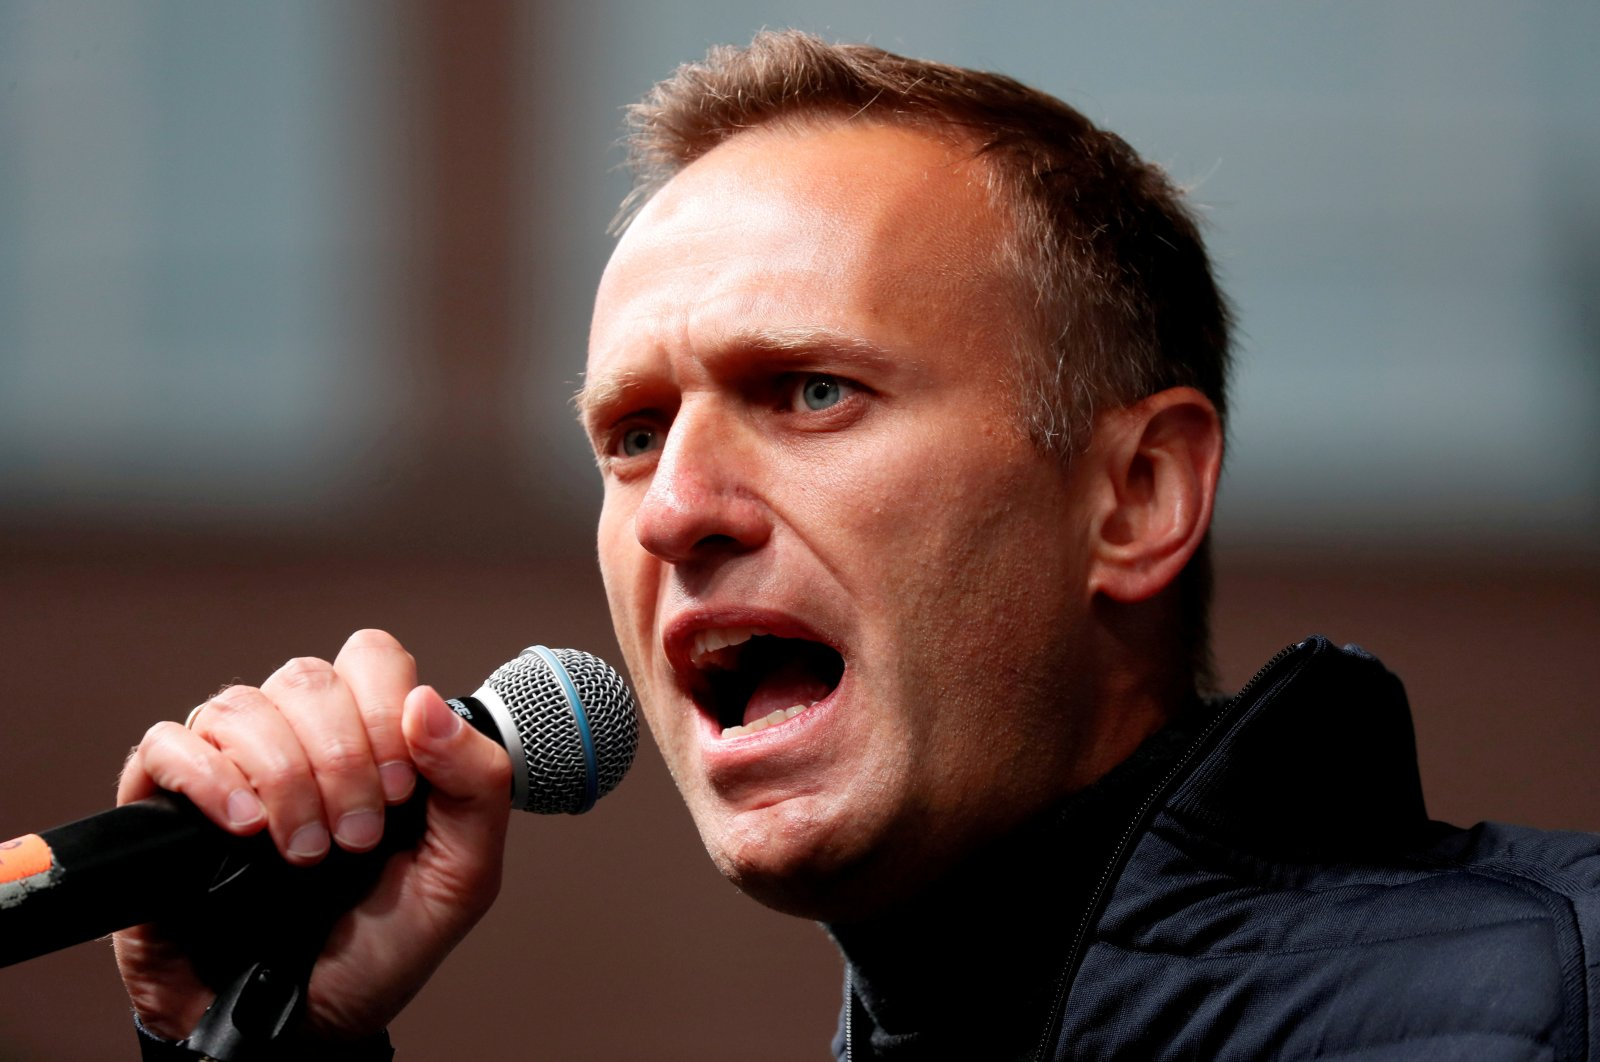 Russian opposition leader Alexei Navalny delivers a speech during a rally to demand the release of jailed protesters, who were detained during opposition demonstrations for fair elections, in Moscow, Russia, Sept. 29, 2019. (Reuters Photo)